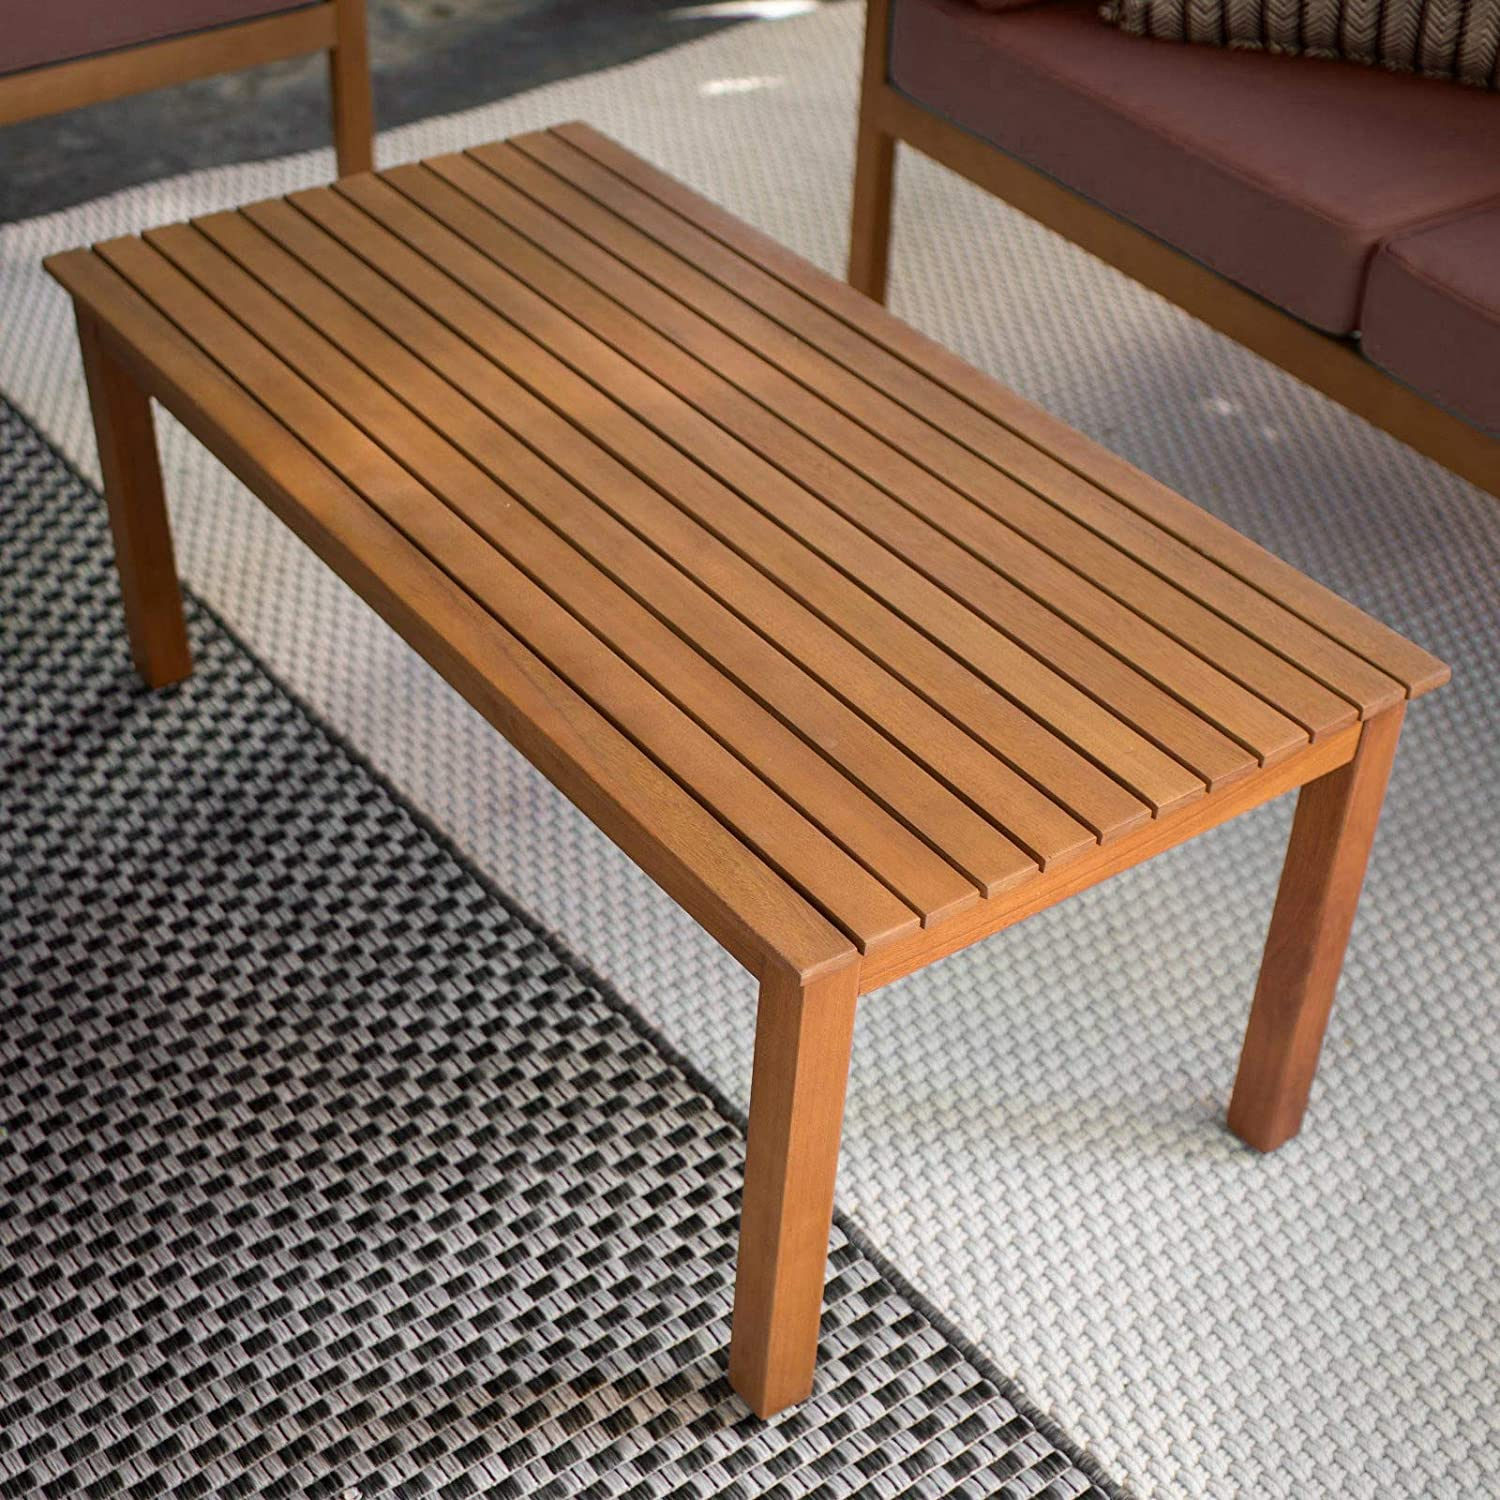 Prime Amazon Com Low Coffee Table Wooden Outdoor Patio Rectangle Download Free Architecture Designs Scobabritishbridgeorg